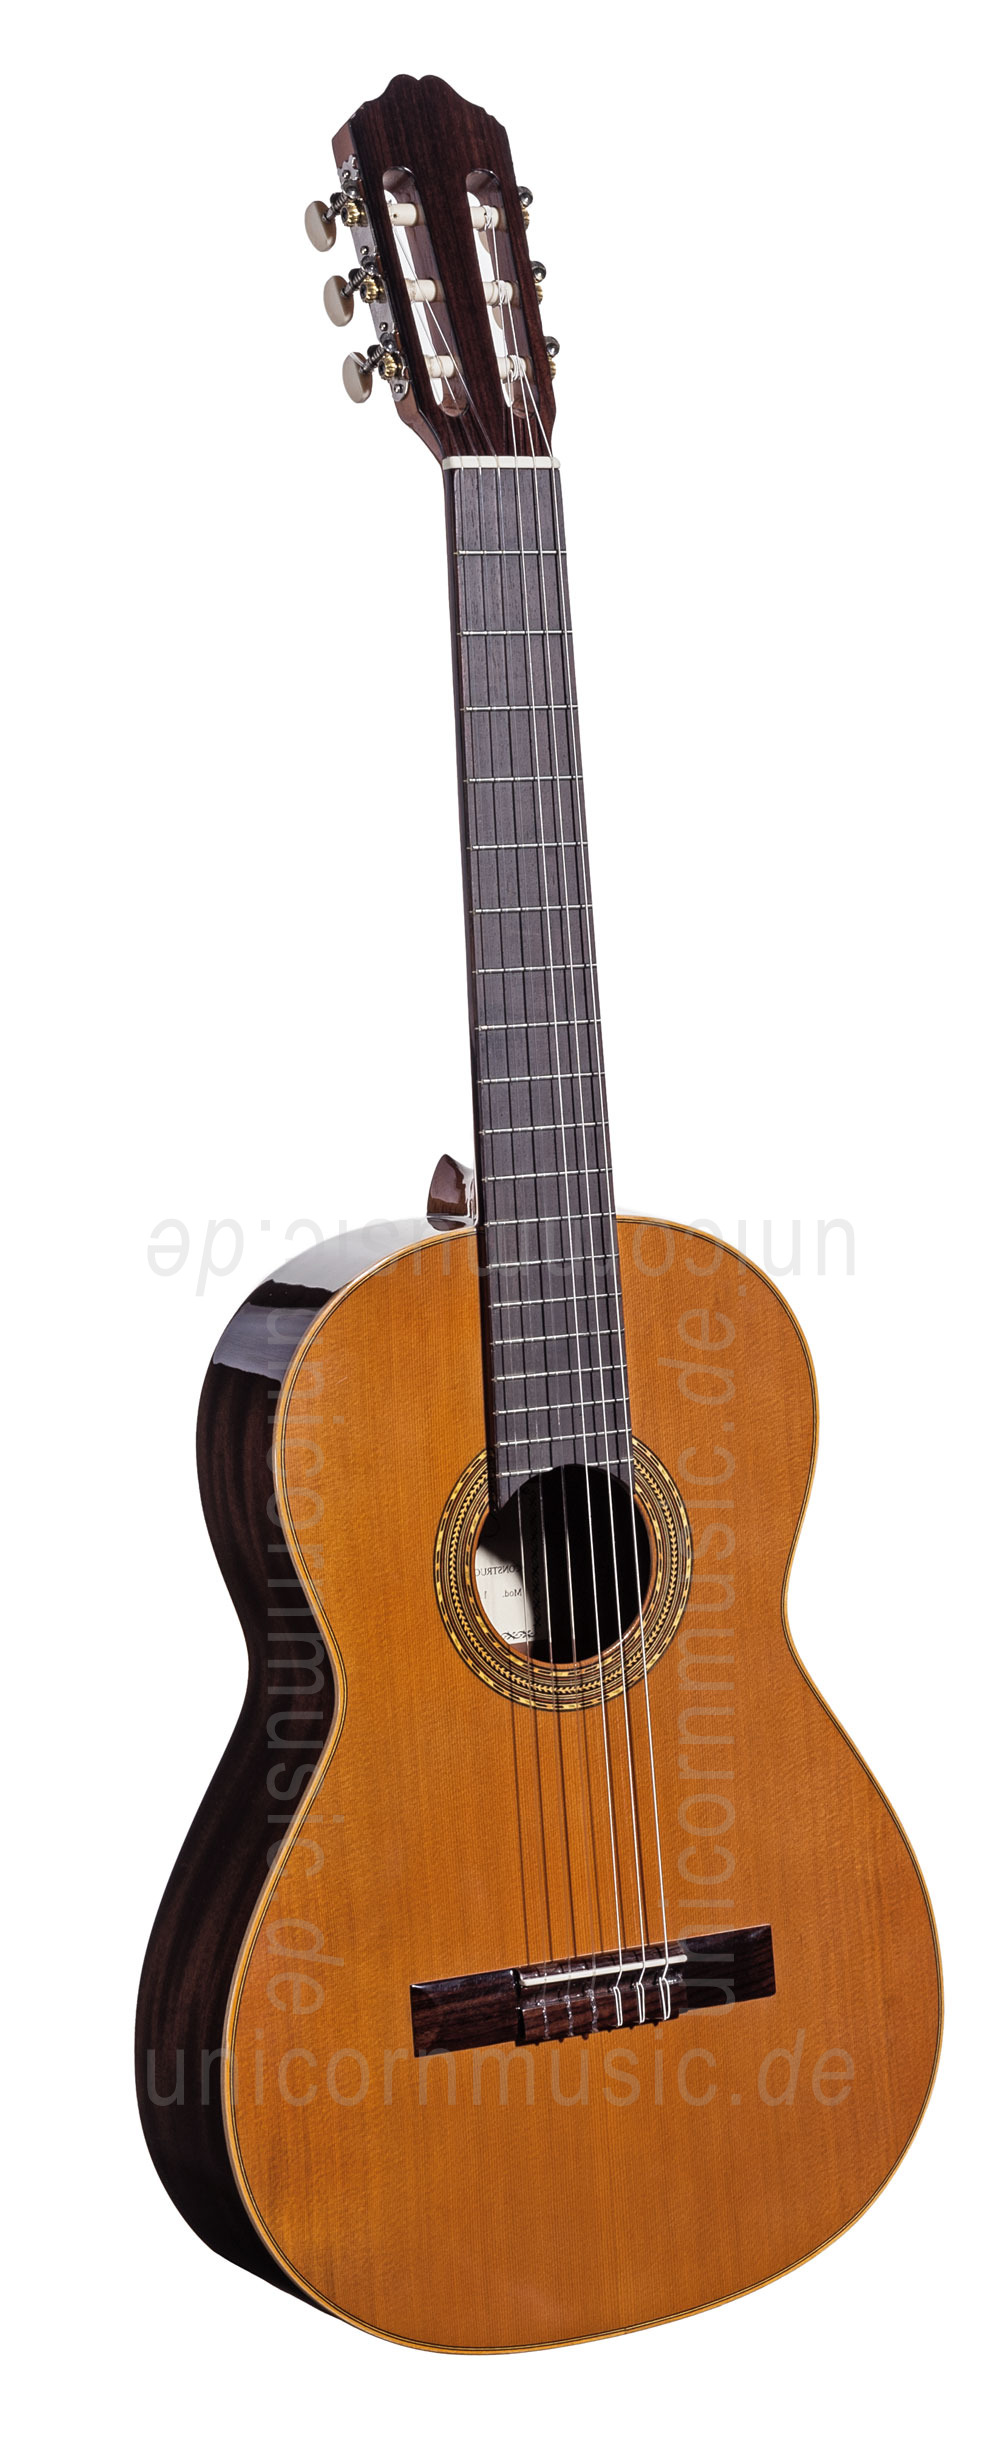 to article description / price Spanish Classical Guitar VALDEZ MODEL 63 SENORITA LH (ladies